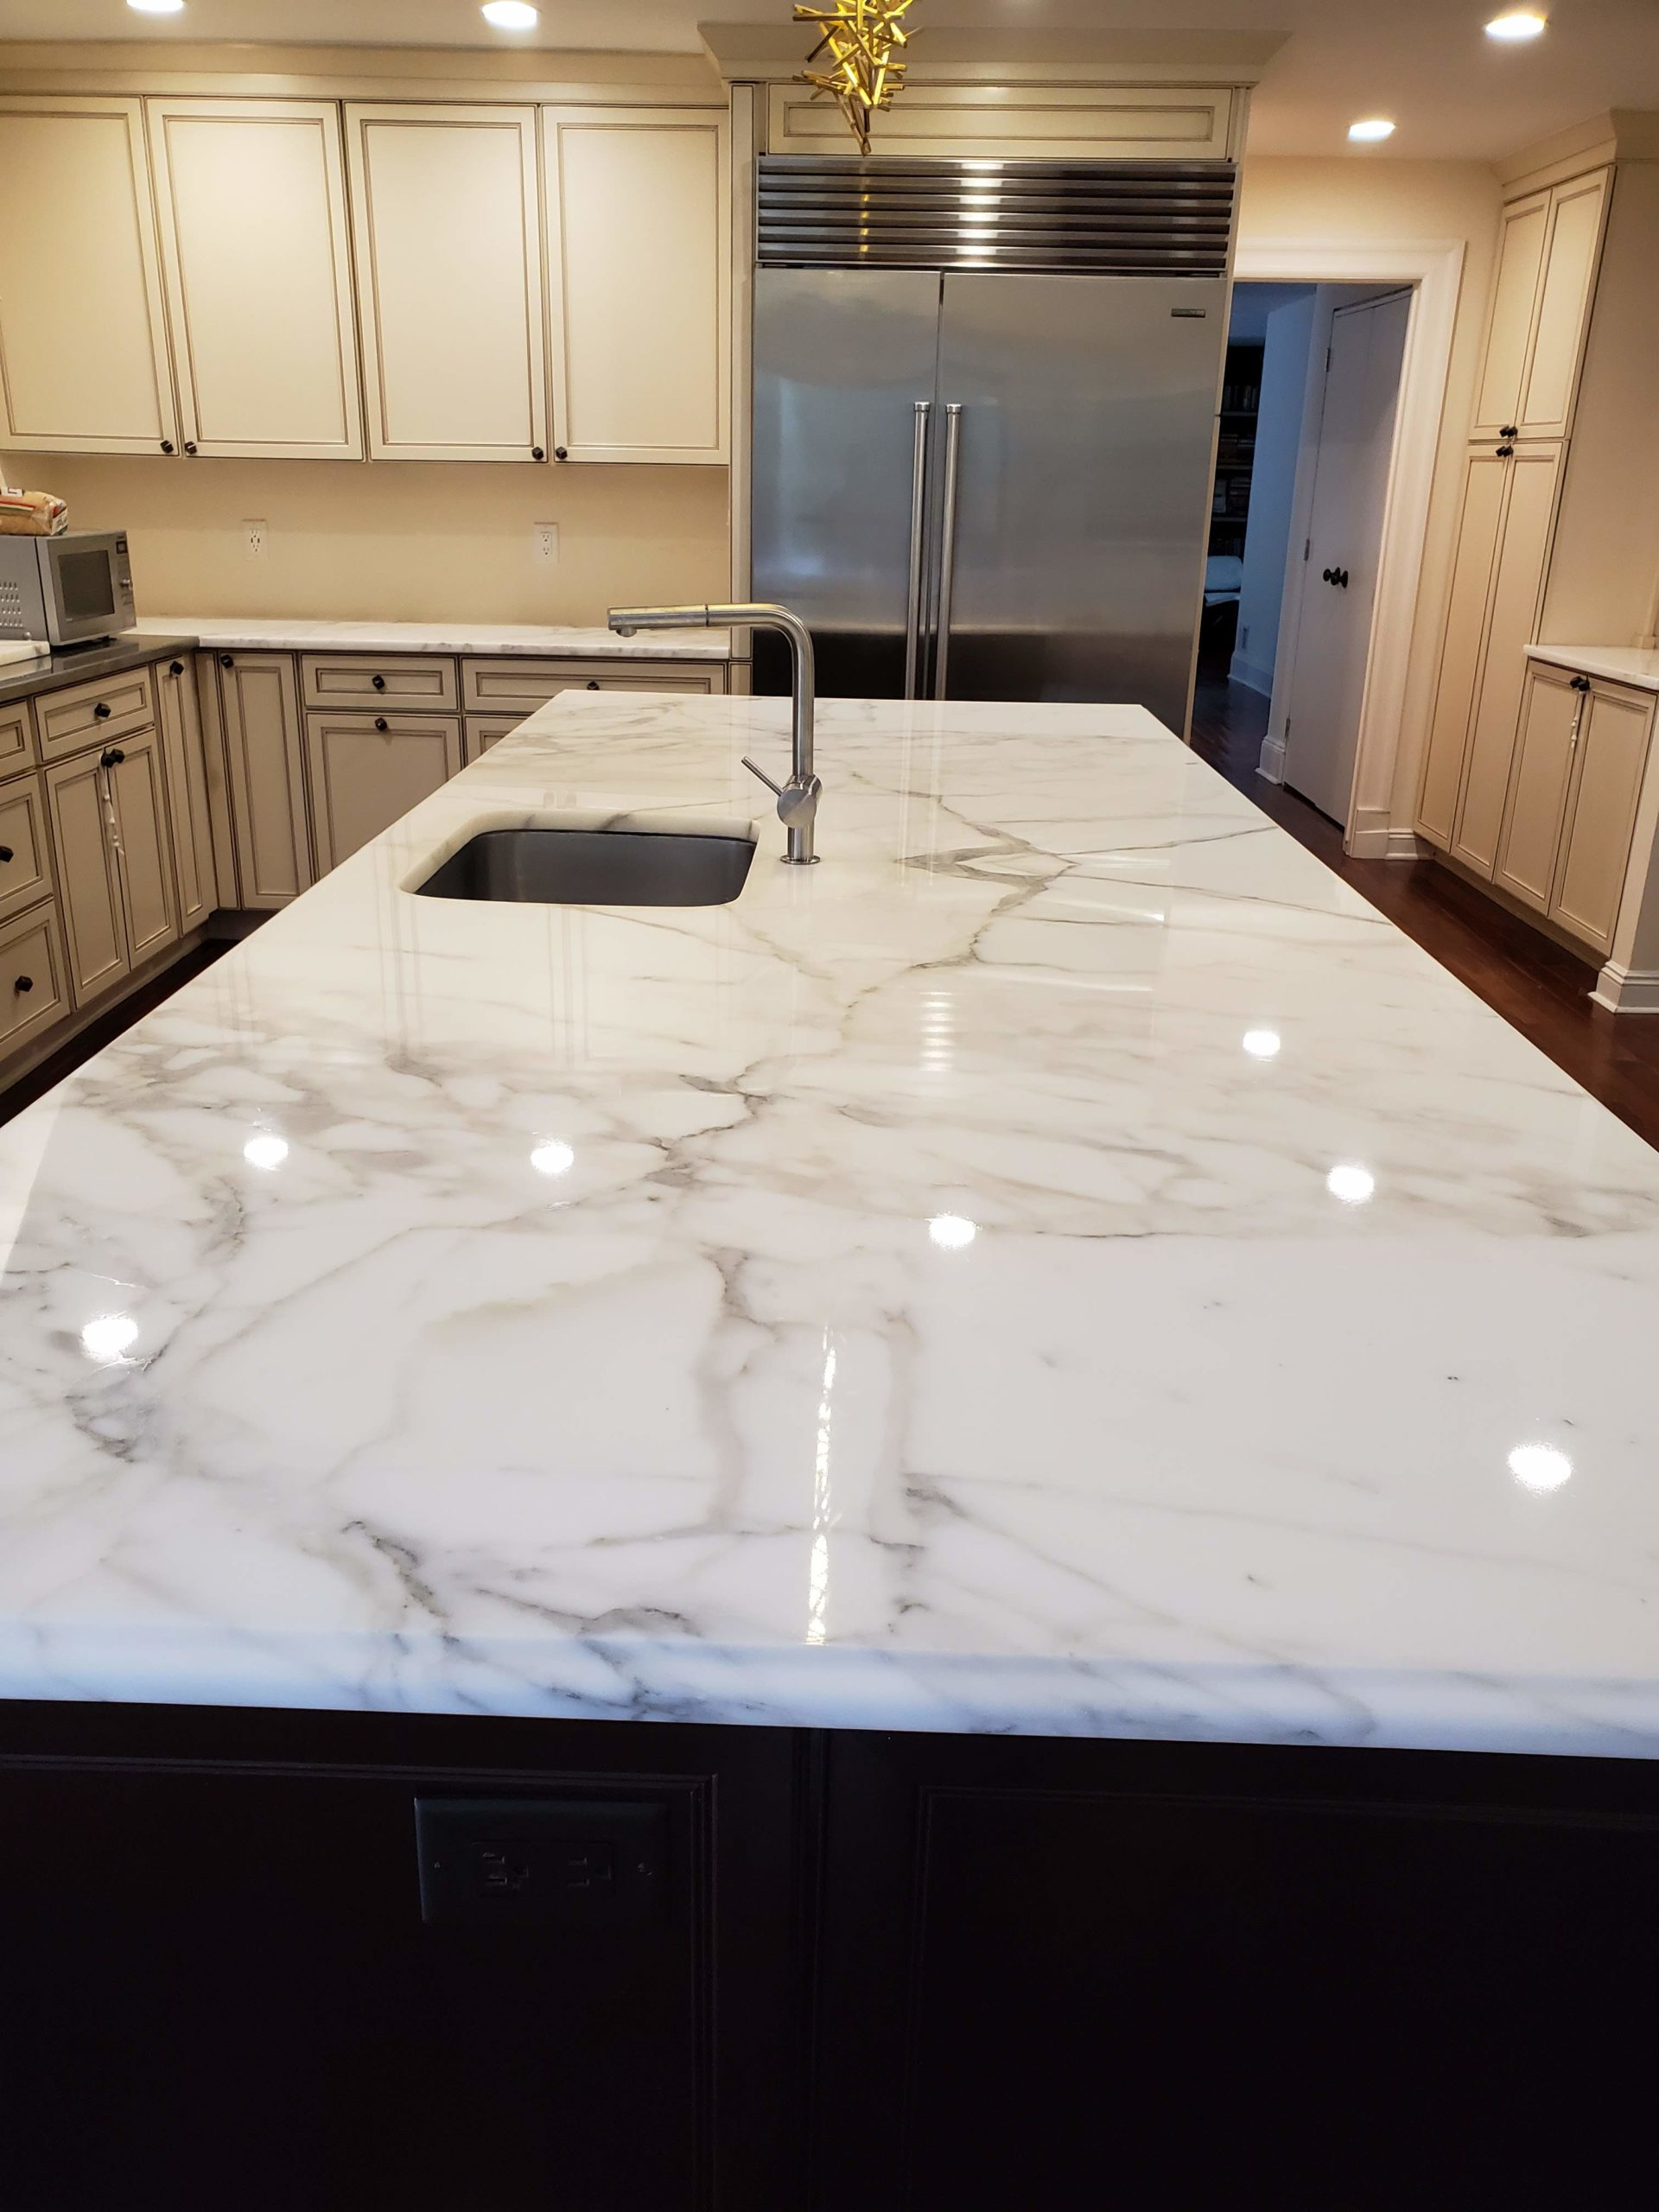 20191007 130414 scaled - Marble Adds Instant Value